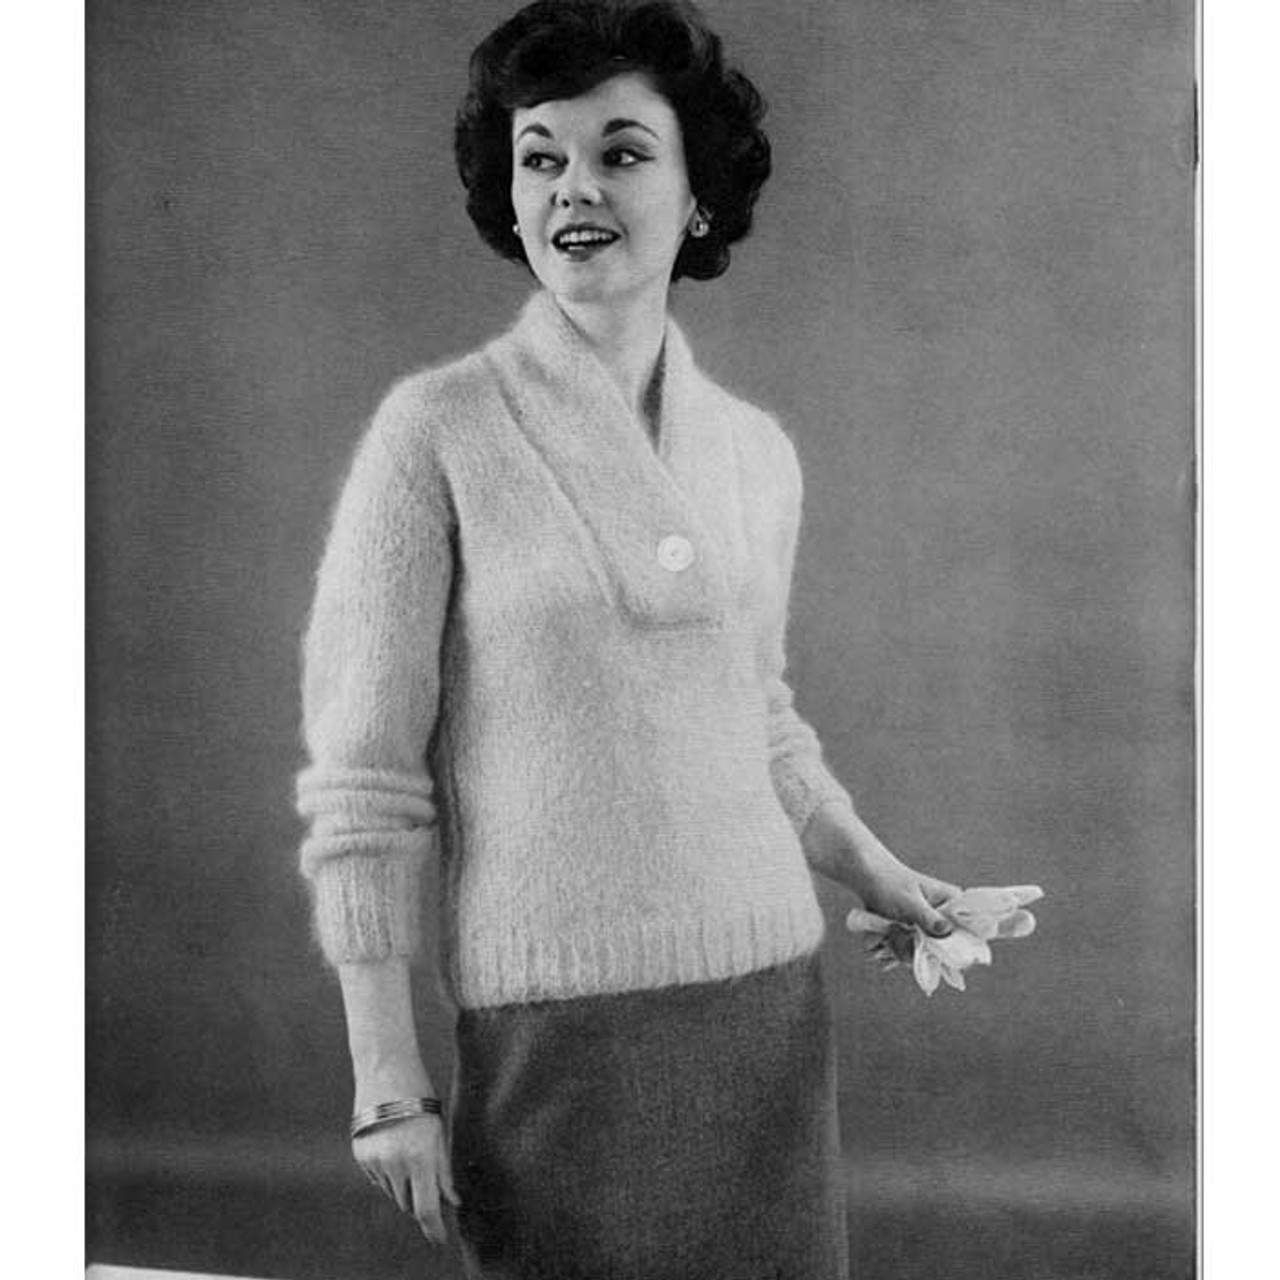 Knitting Pattern Yoked Pullover, Vintage 1950s